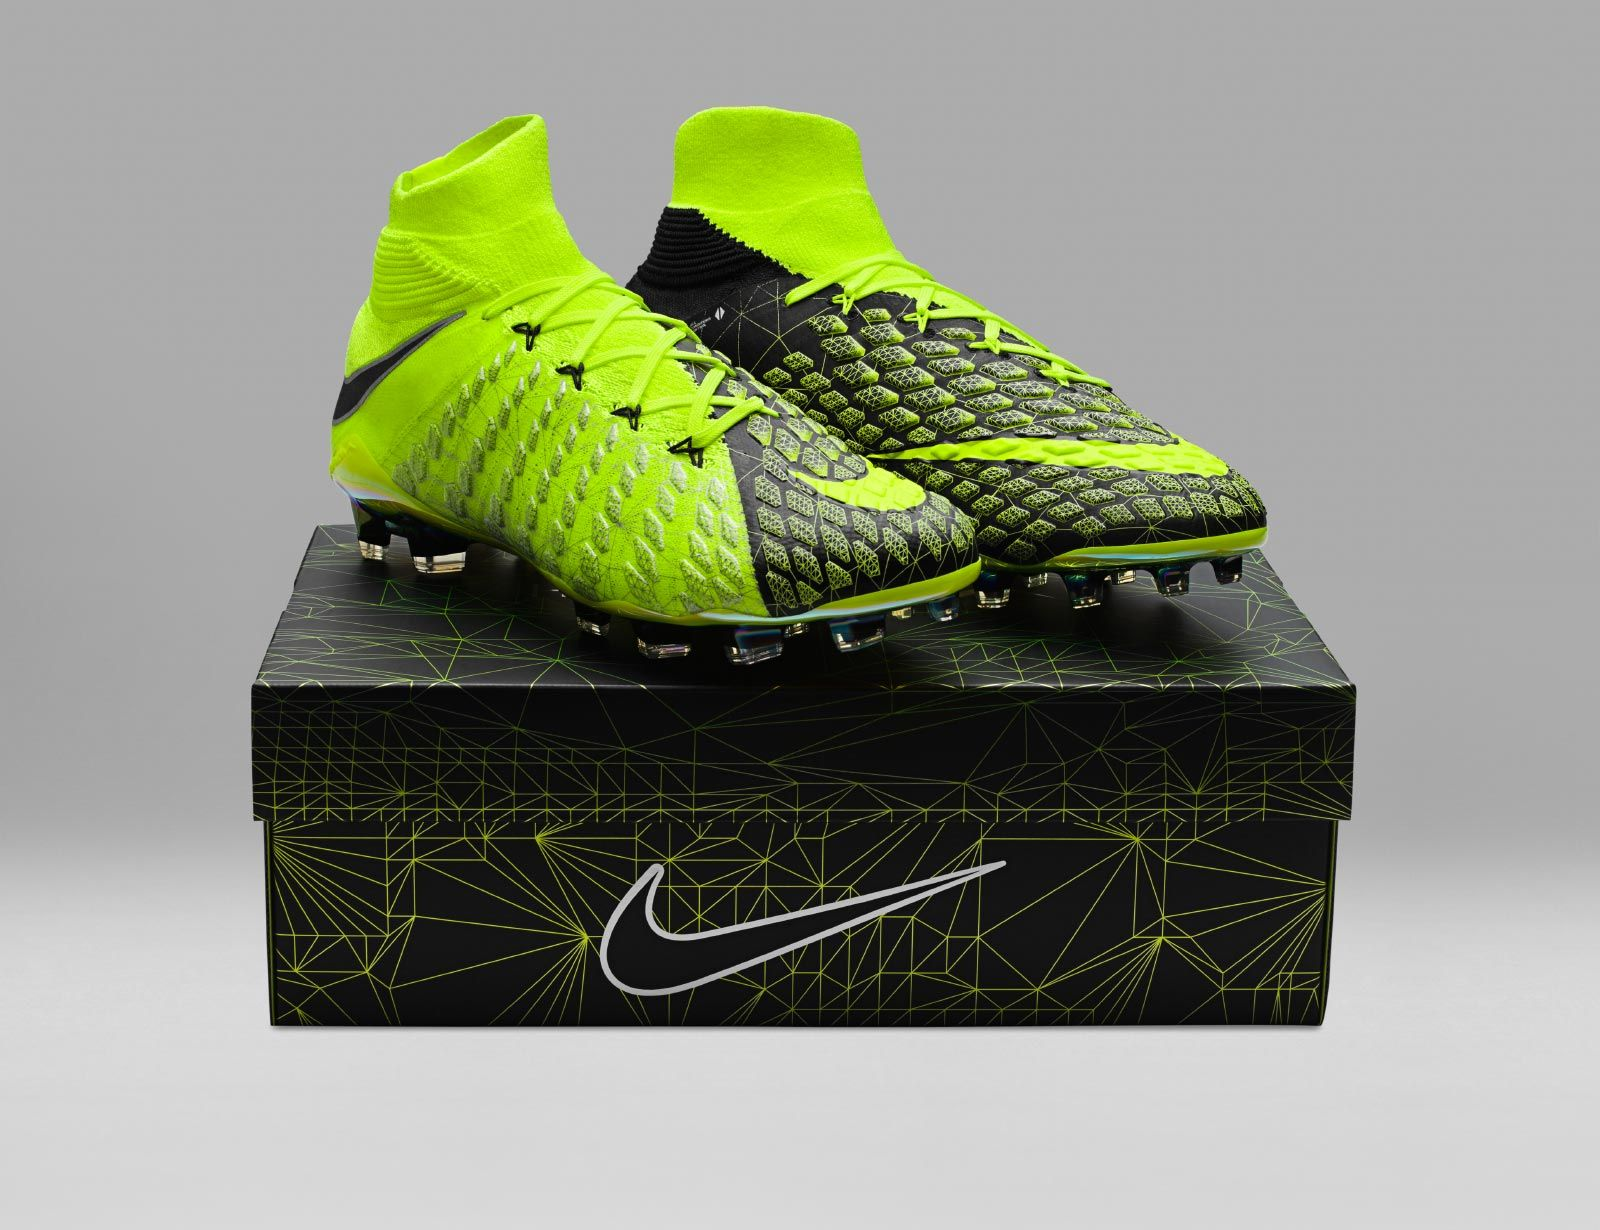 sports shoes 649c5 abc8b The limited-edition Nike Hypervenom Phantom III EA Sports boots introduce a striking  design, inspired by Real Player Motion technology.